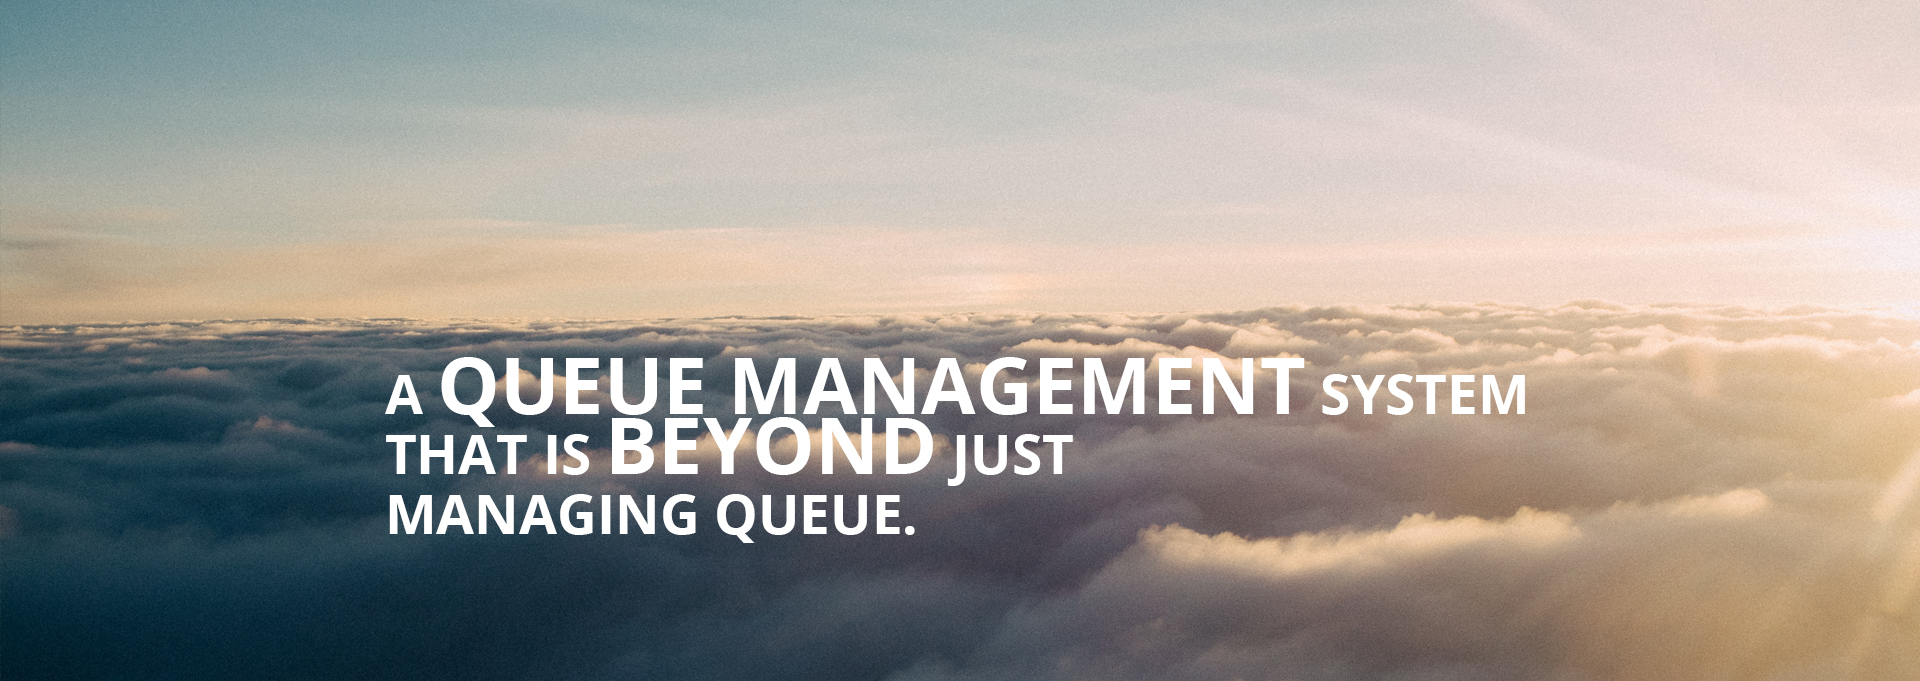 beyond-just-managing-queue